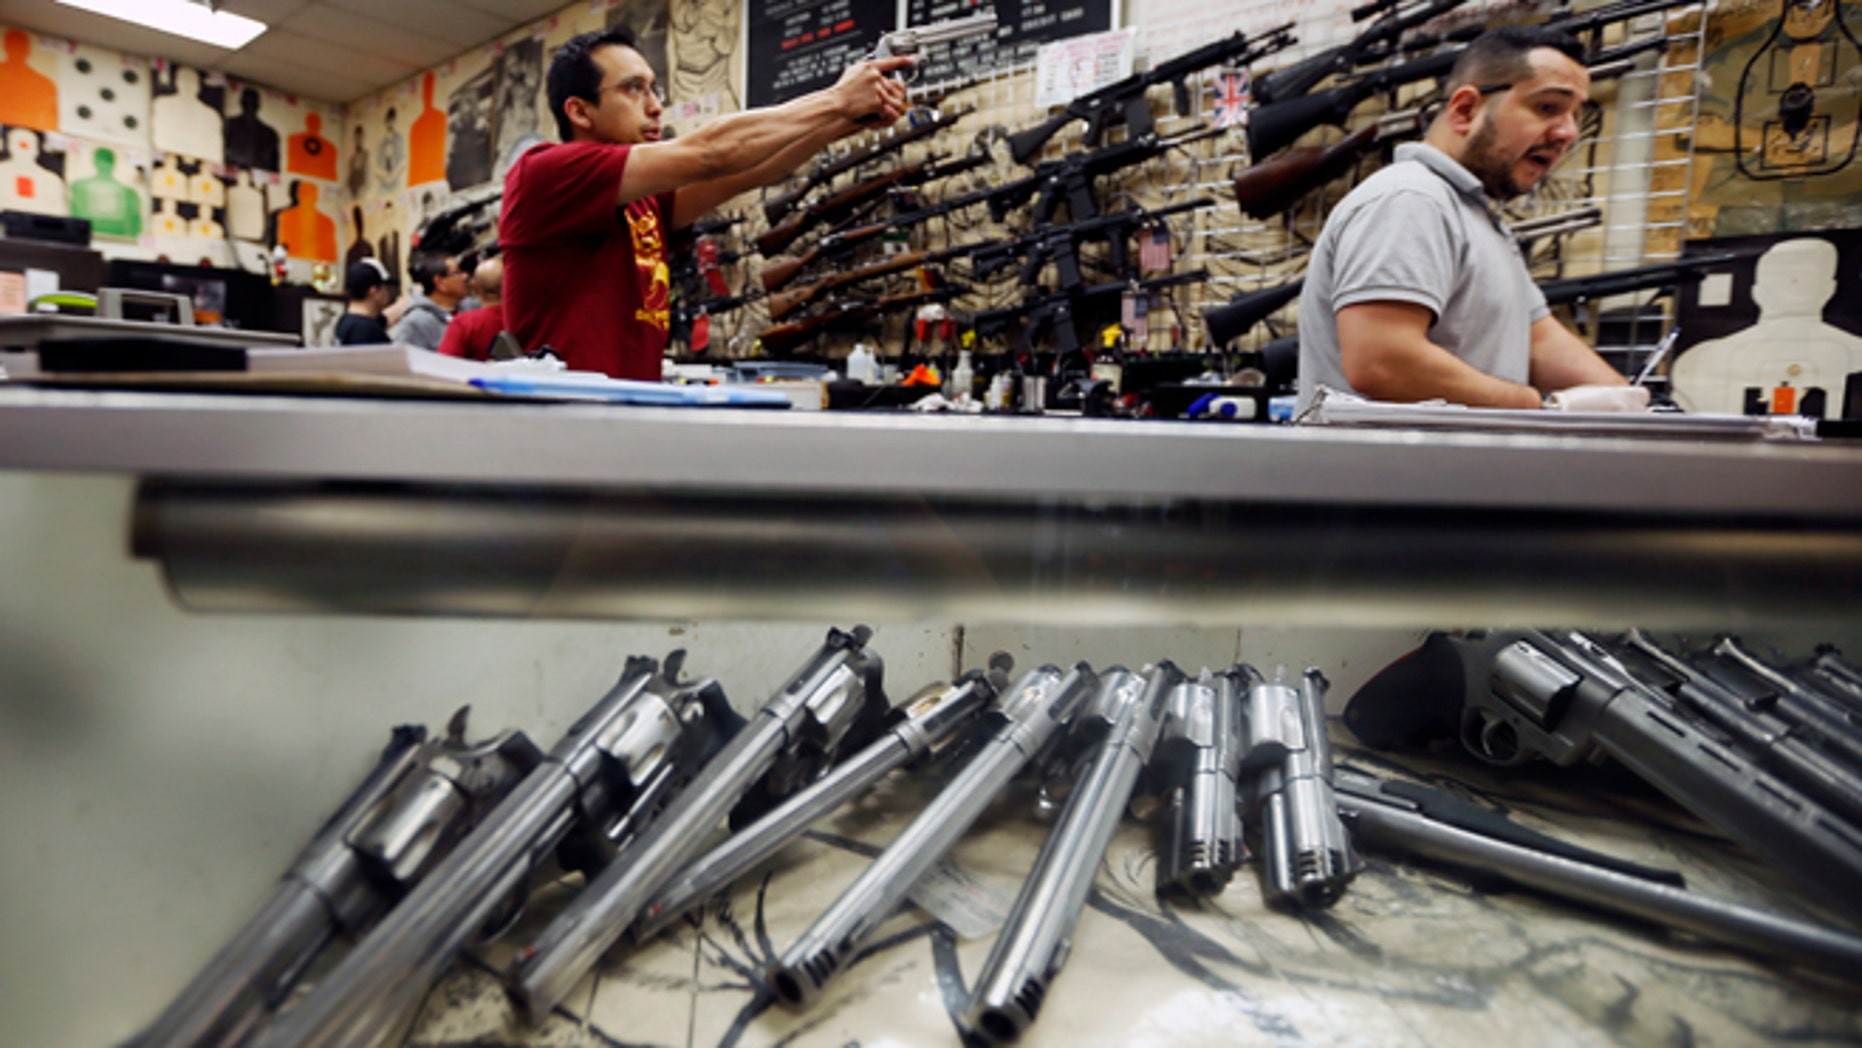 Jan. 23, 2013: Employees demonstrate gun safety to clients at the Los Angeles gun club in Los Angeles.